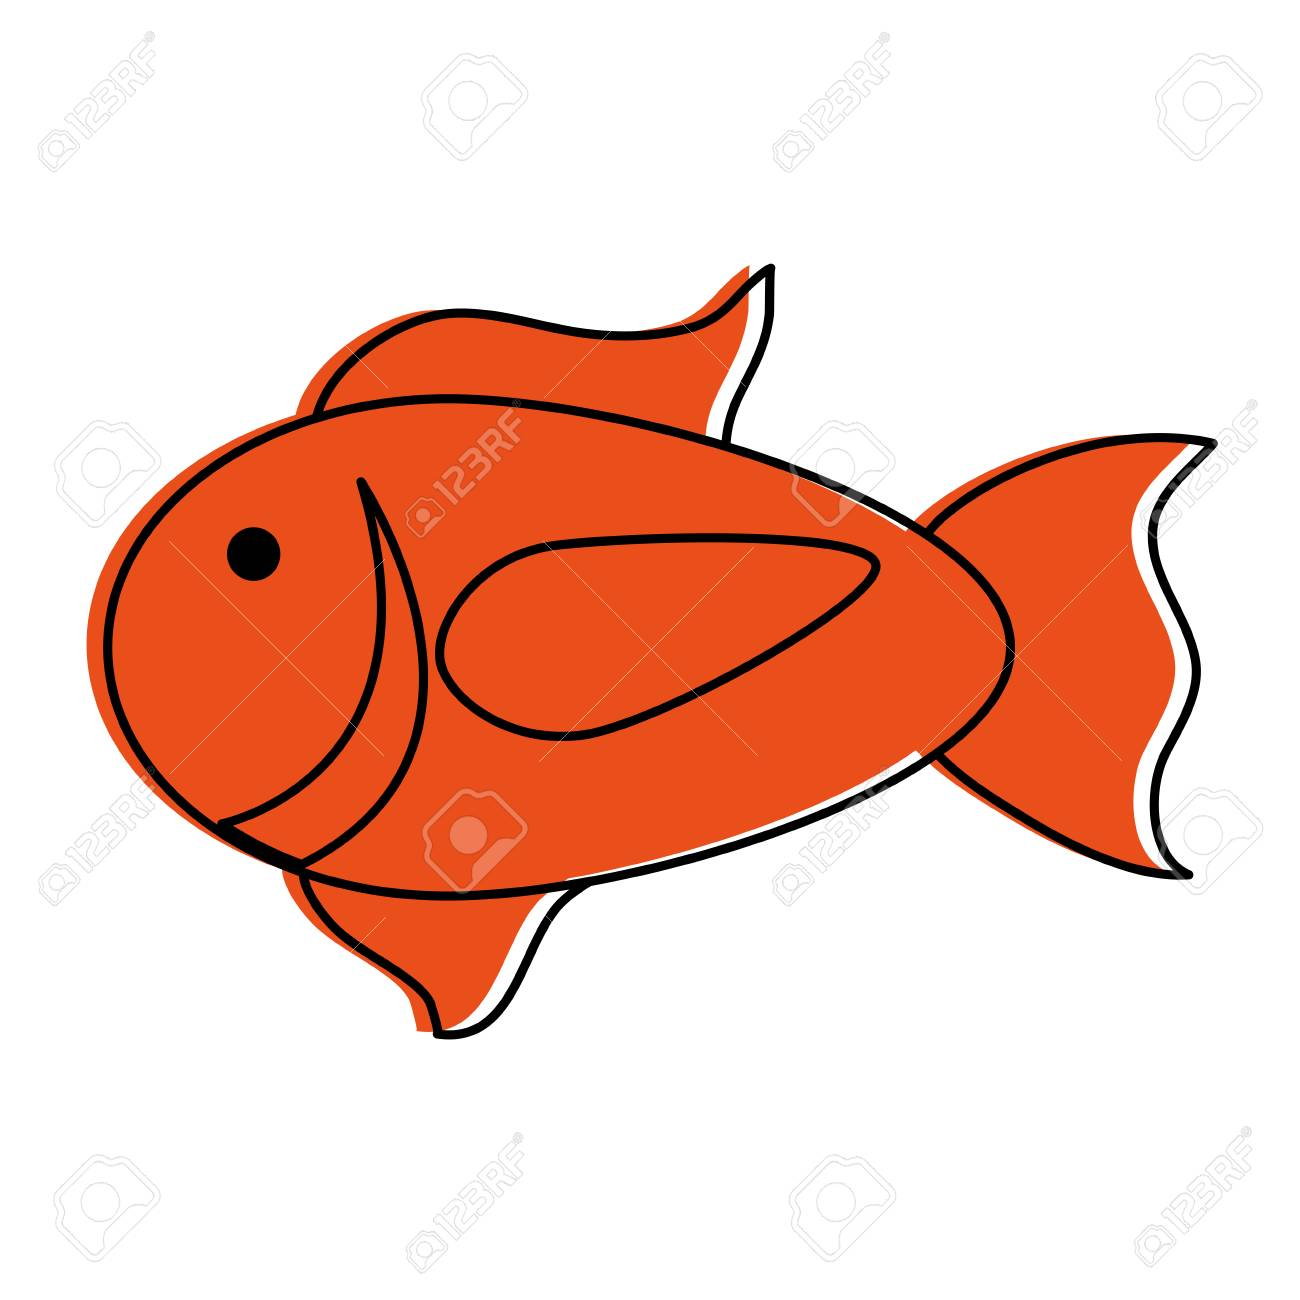 Cartoon Fish Icon Image Vector Illustration Design Orange Color ...